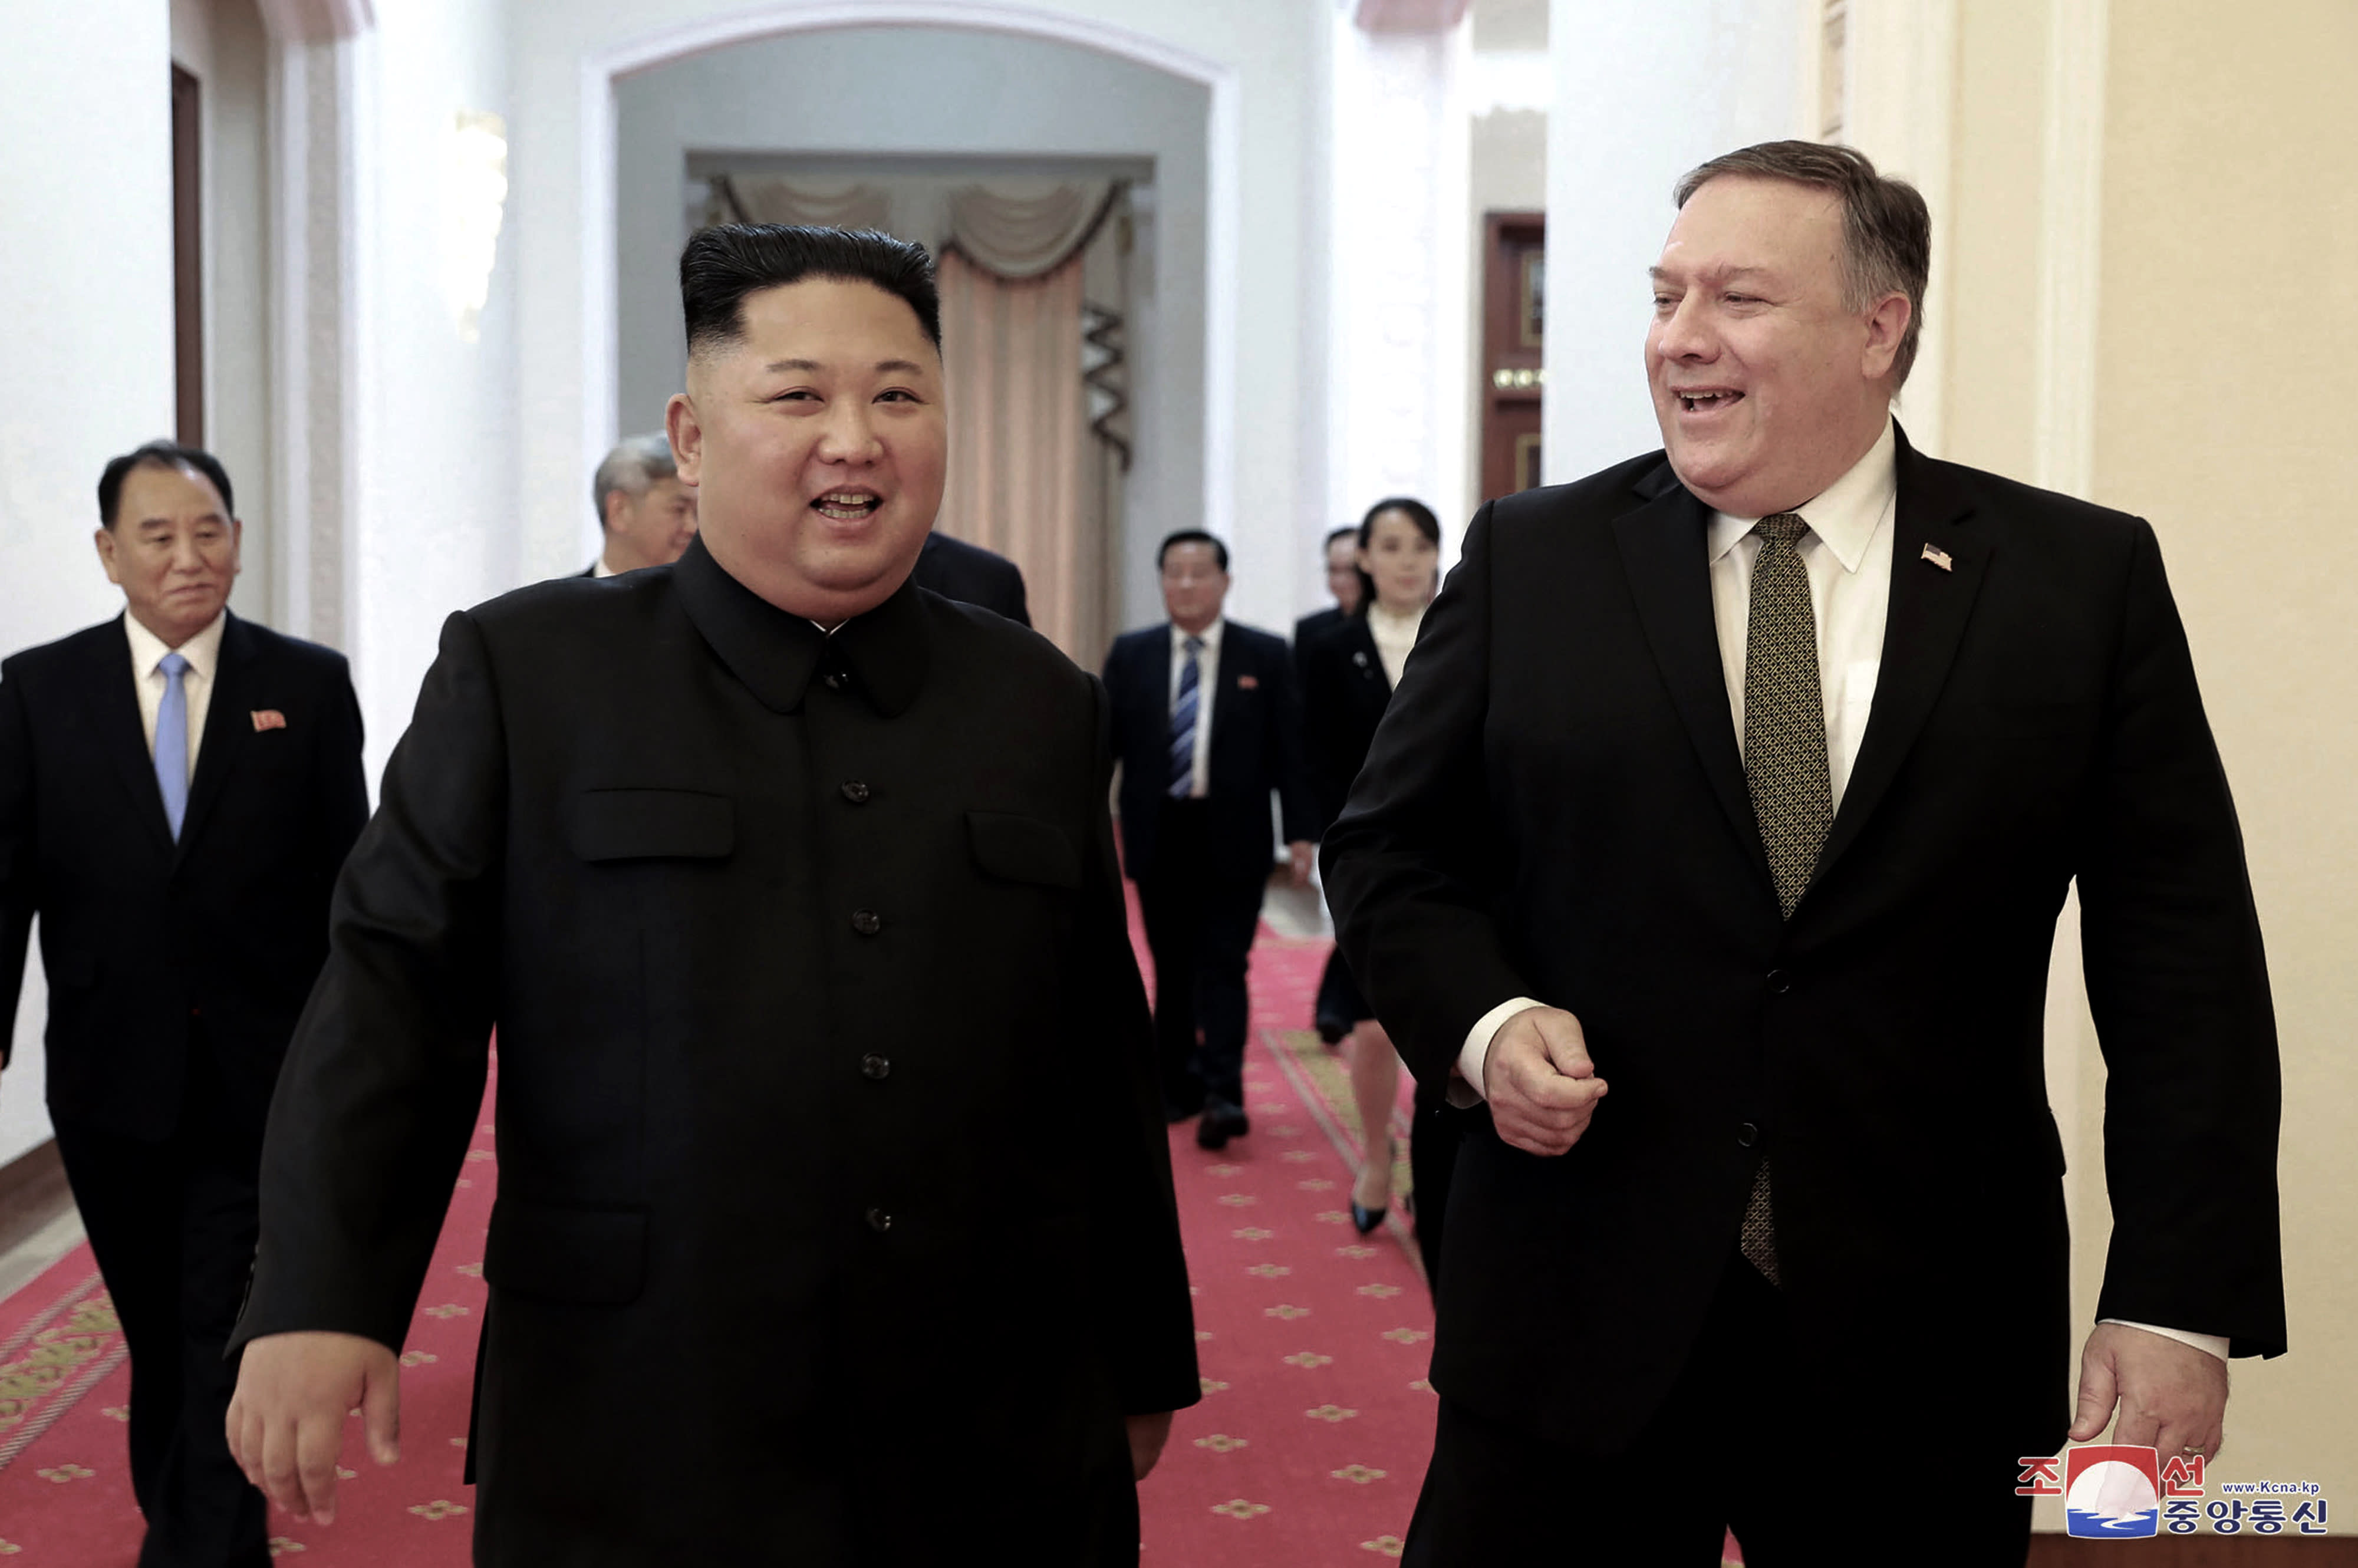 "FILE - In this Oct. 7, 2018, file photo provided by the North Korean government, North Korean leader Kim Jong Un, center left, and U.S. Secretary of State Mike Pompeo walk together before their meeting in Pyongyang, North Korea. North Korea said Thursday, April 18, 2019, that it had test-fired a new type of ""tactical guided weapon,"" its first such test in nearly half a year, and demanded that Washington remove Pompeo from nuclear negotiations. Korean language watermark on image as provided by source reads: ""KCNA"" which is the abbreviation for Korean Central News Agency. (Korean Central News Agency/Korea News Service via AP, File)"